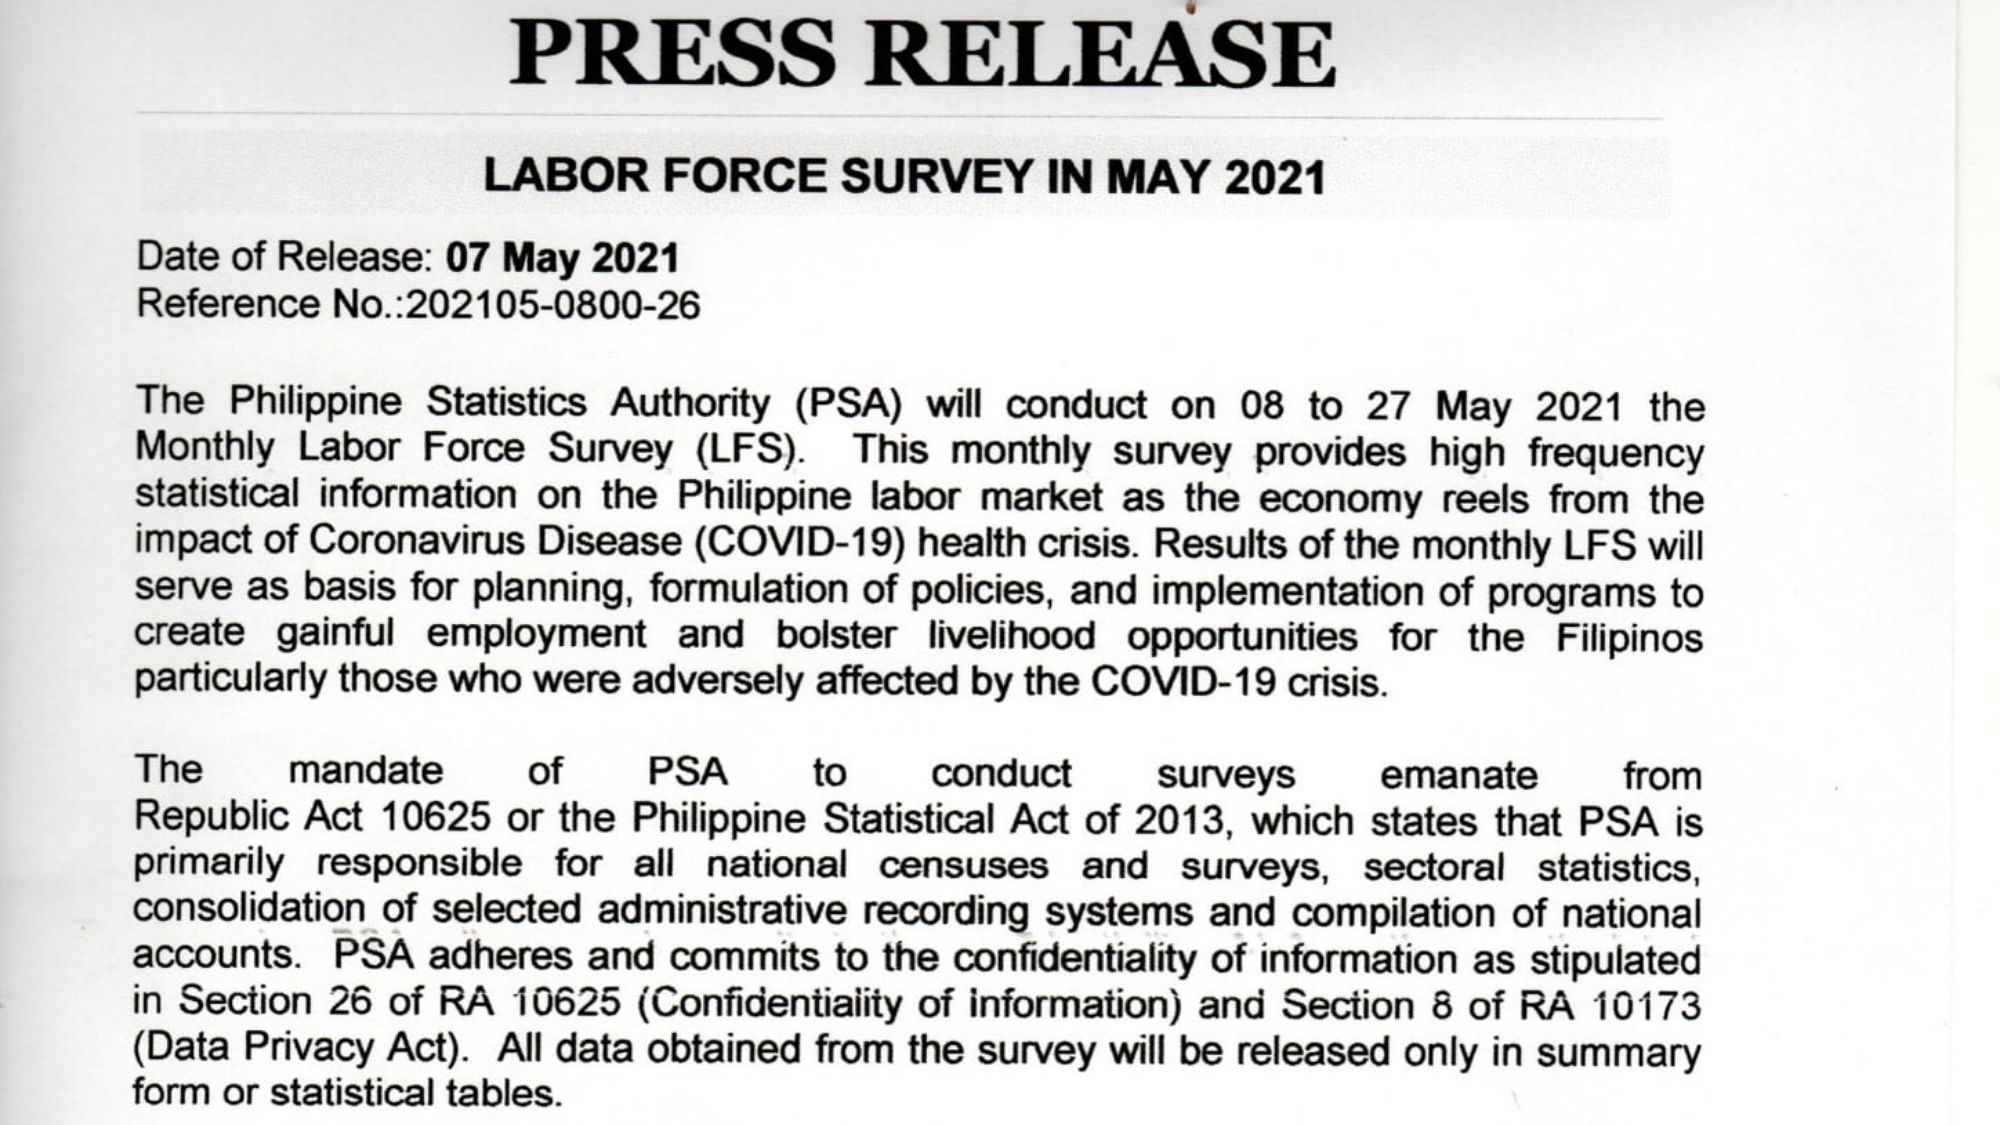 Labor survey for workers affected by pandemic launched in EV